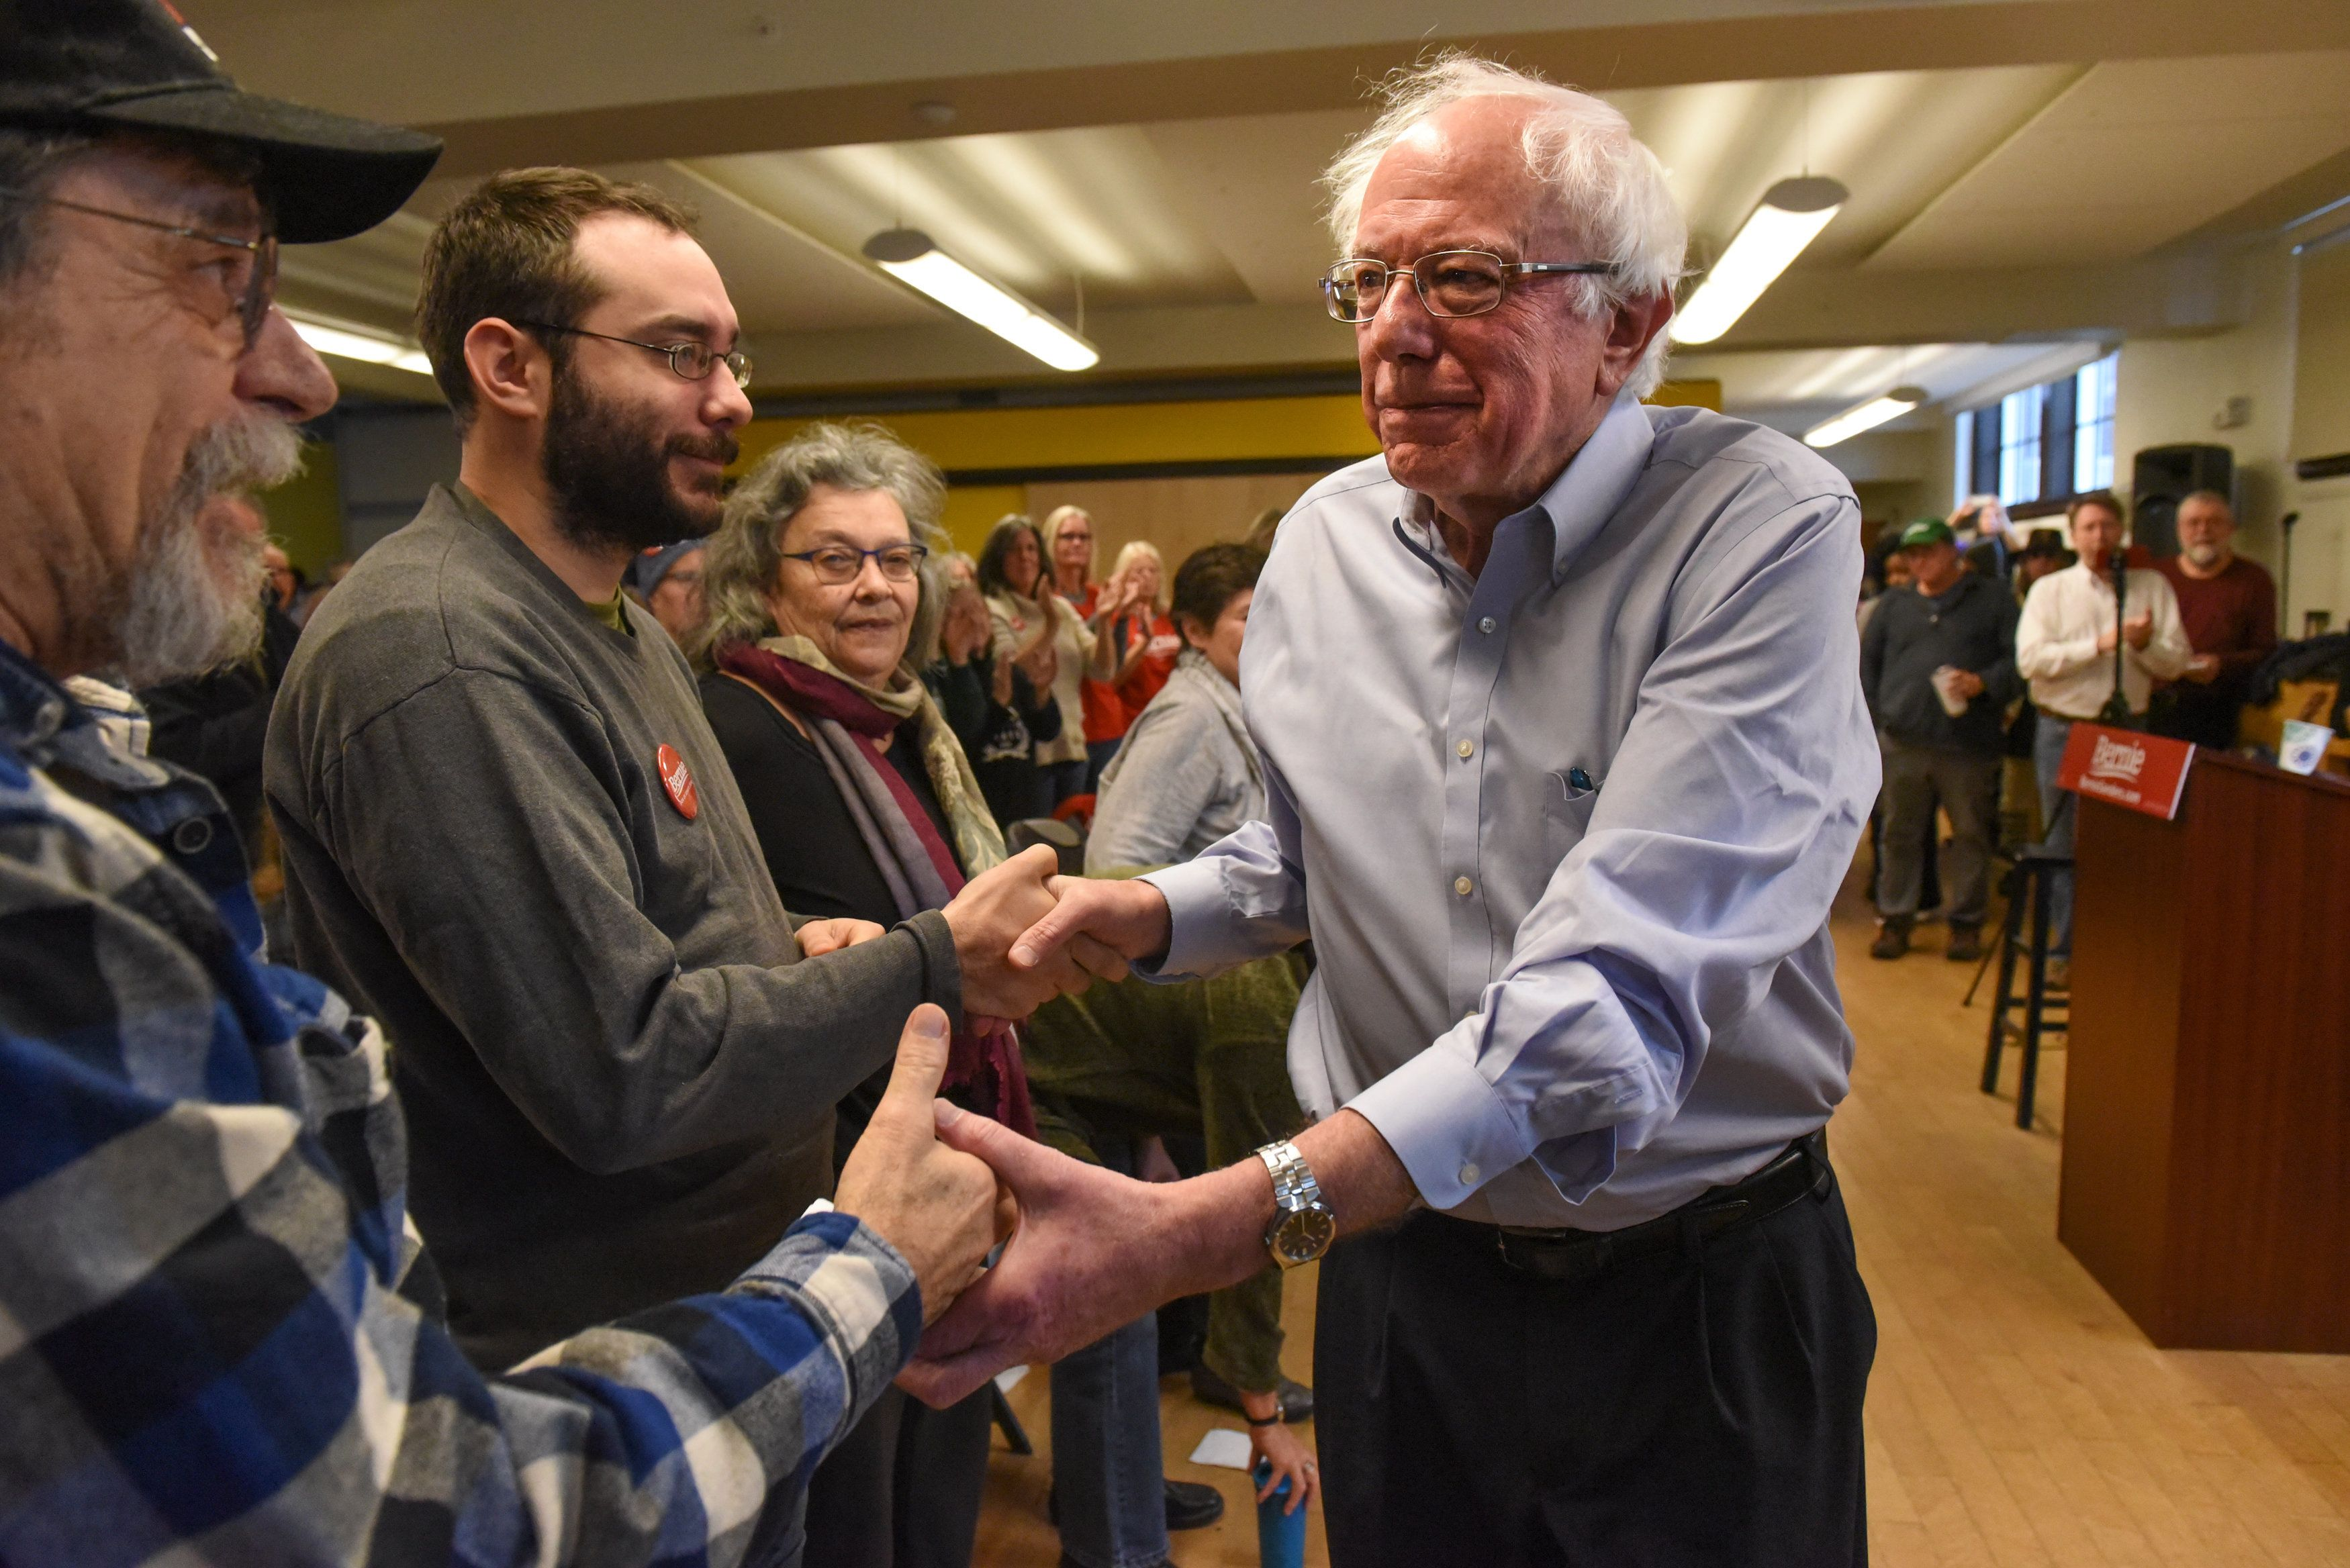 Bernie's In: Sanders Joins the 2020 Race